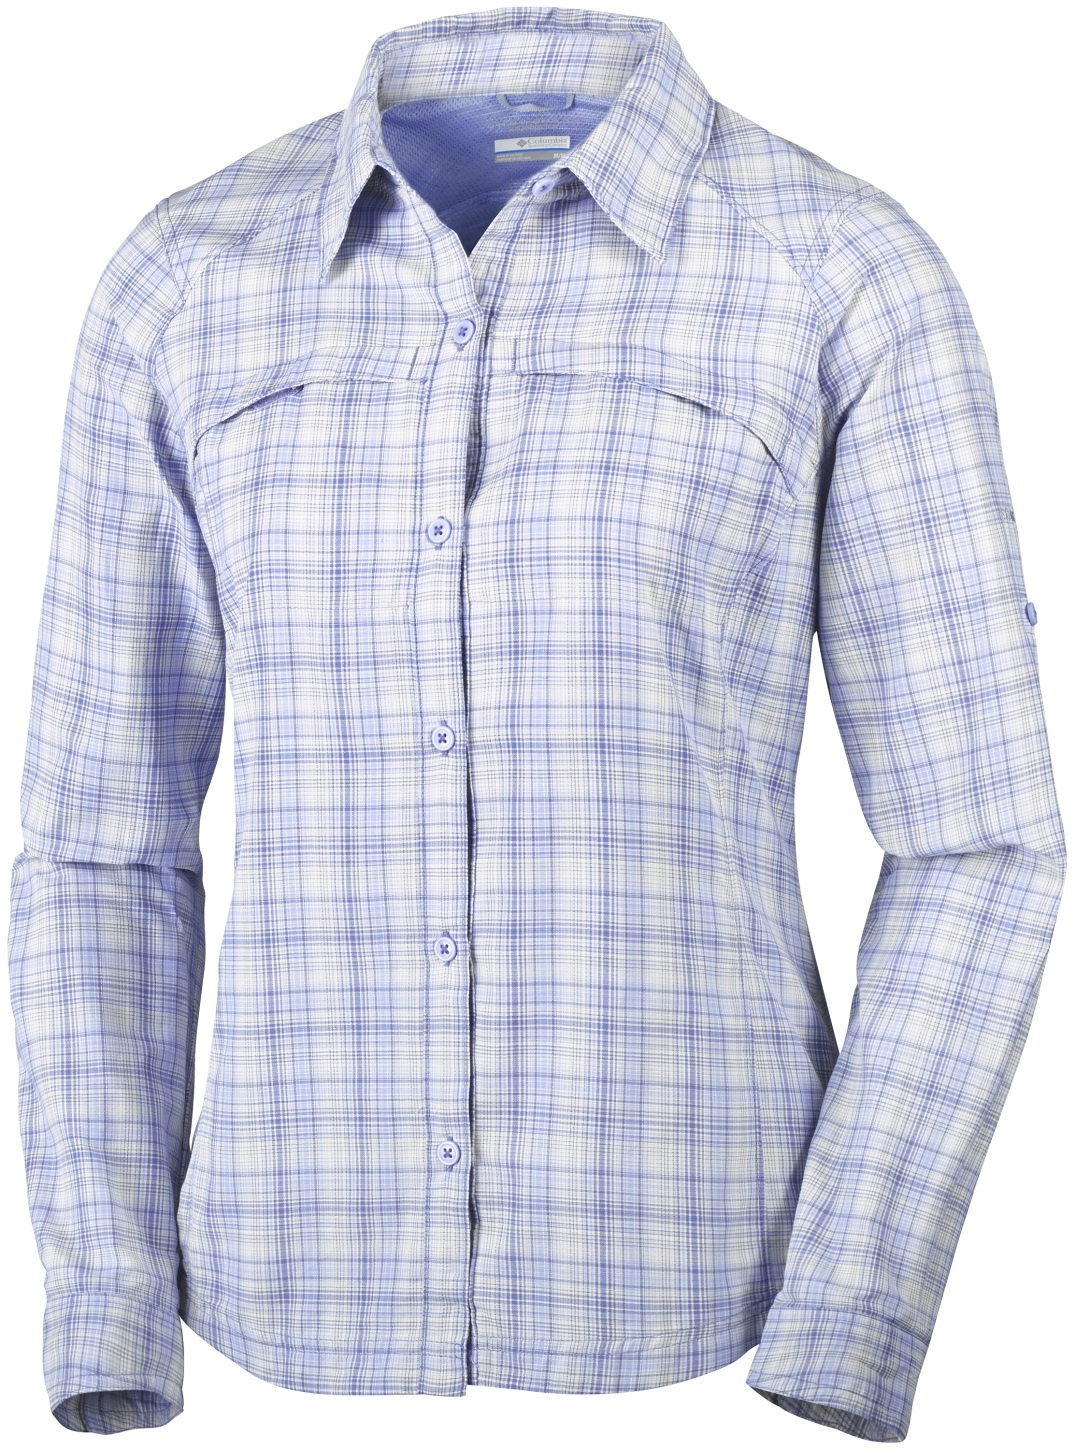 Columbia Women's Silver Ridge Plaid Long Sleeve Shirt Bluebell Ripstop-30